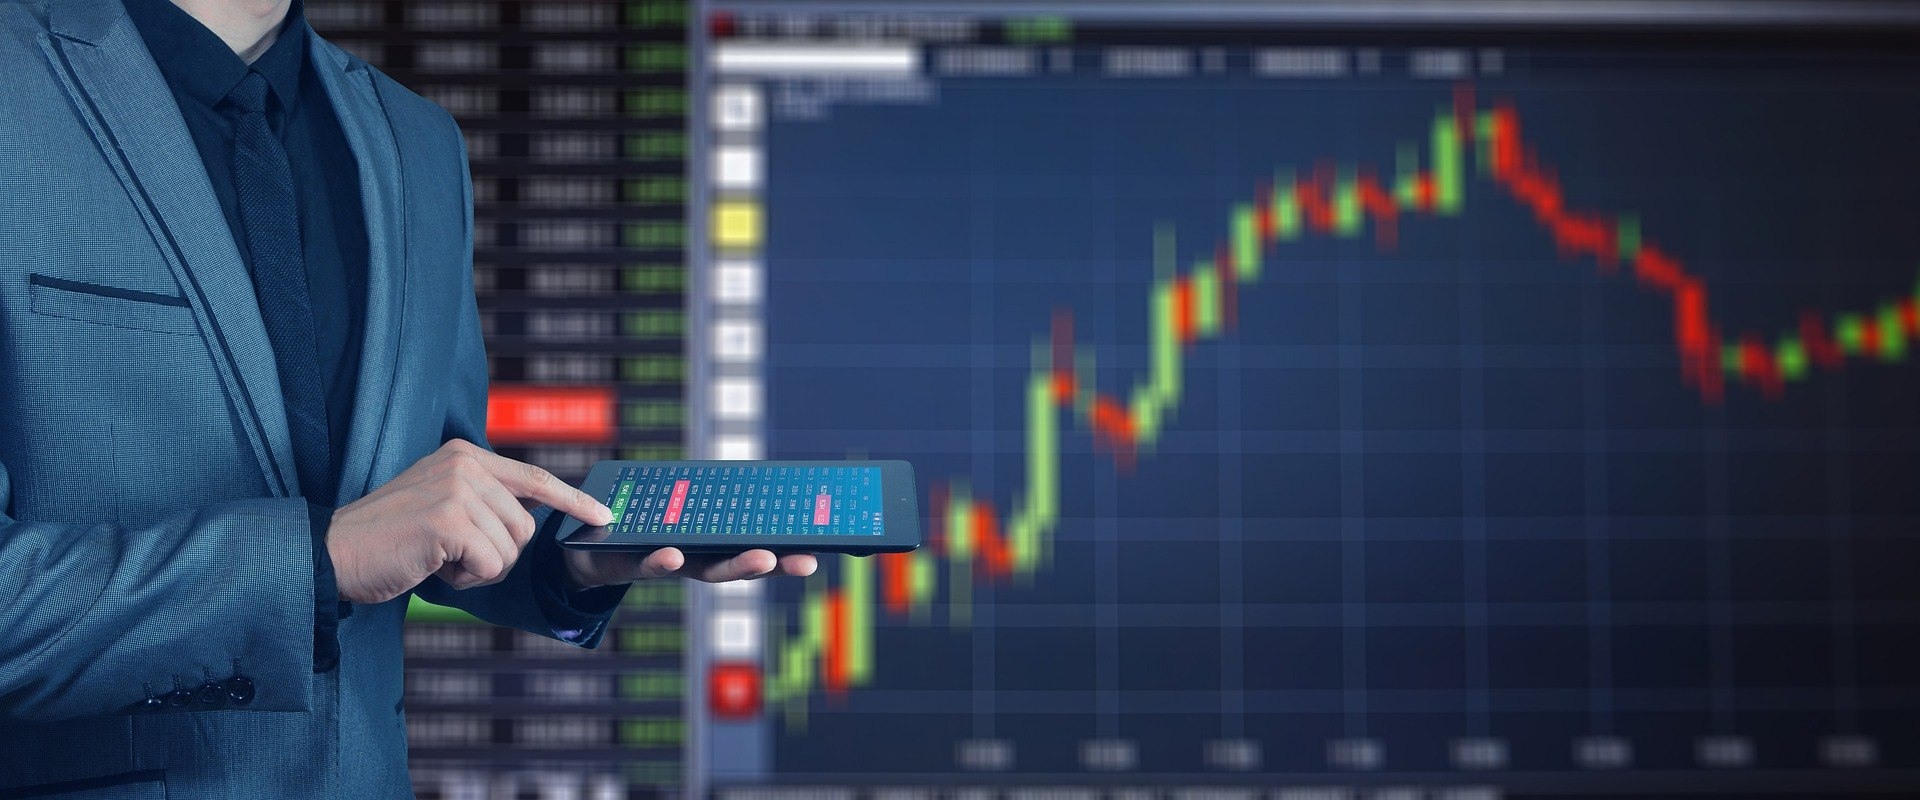 Top Crypto Strategist Eyes Loopring Over its Take Off Potential